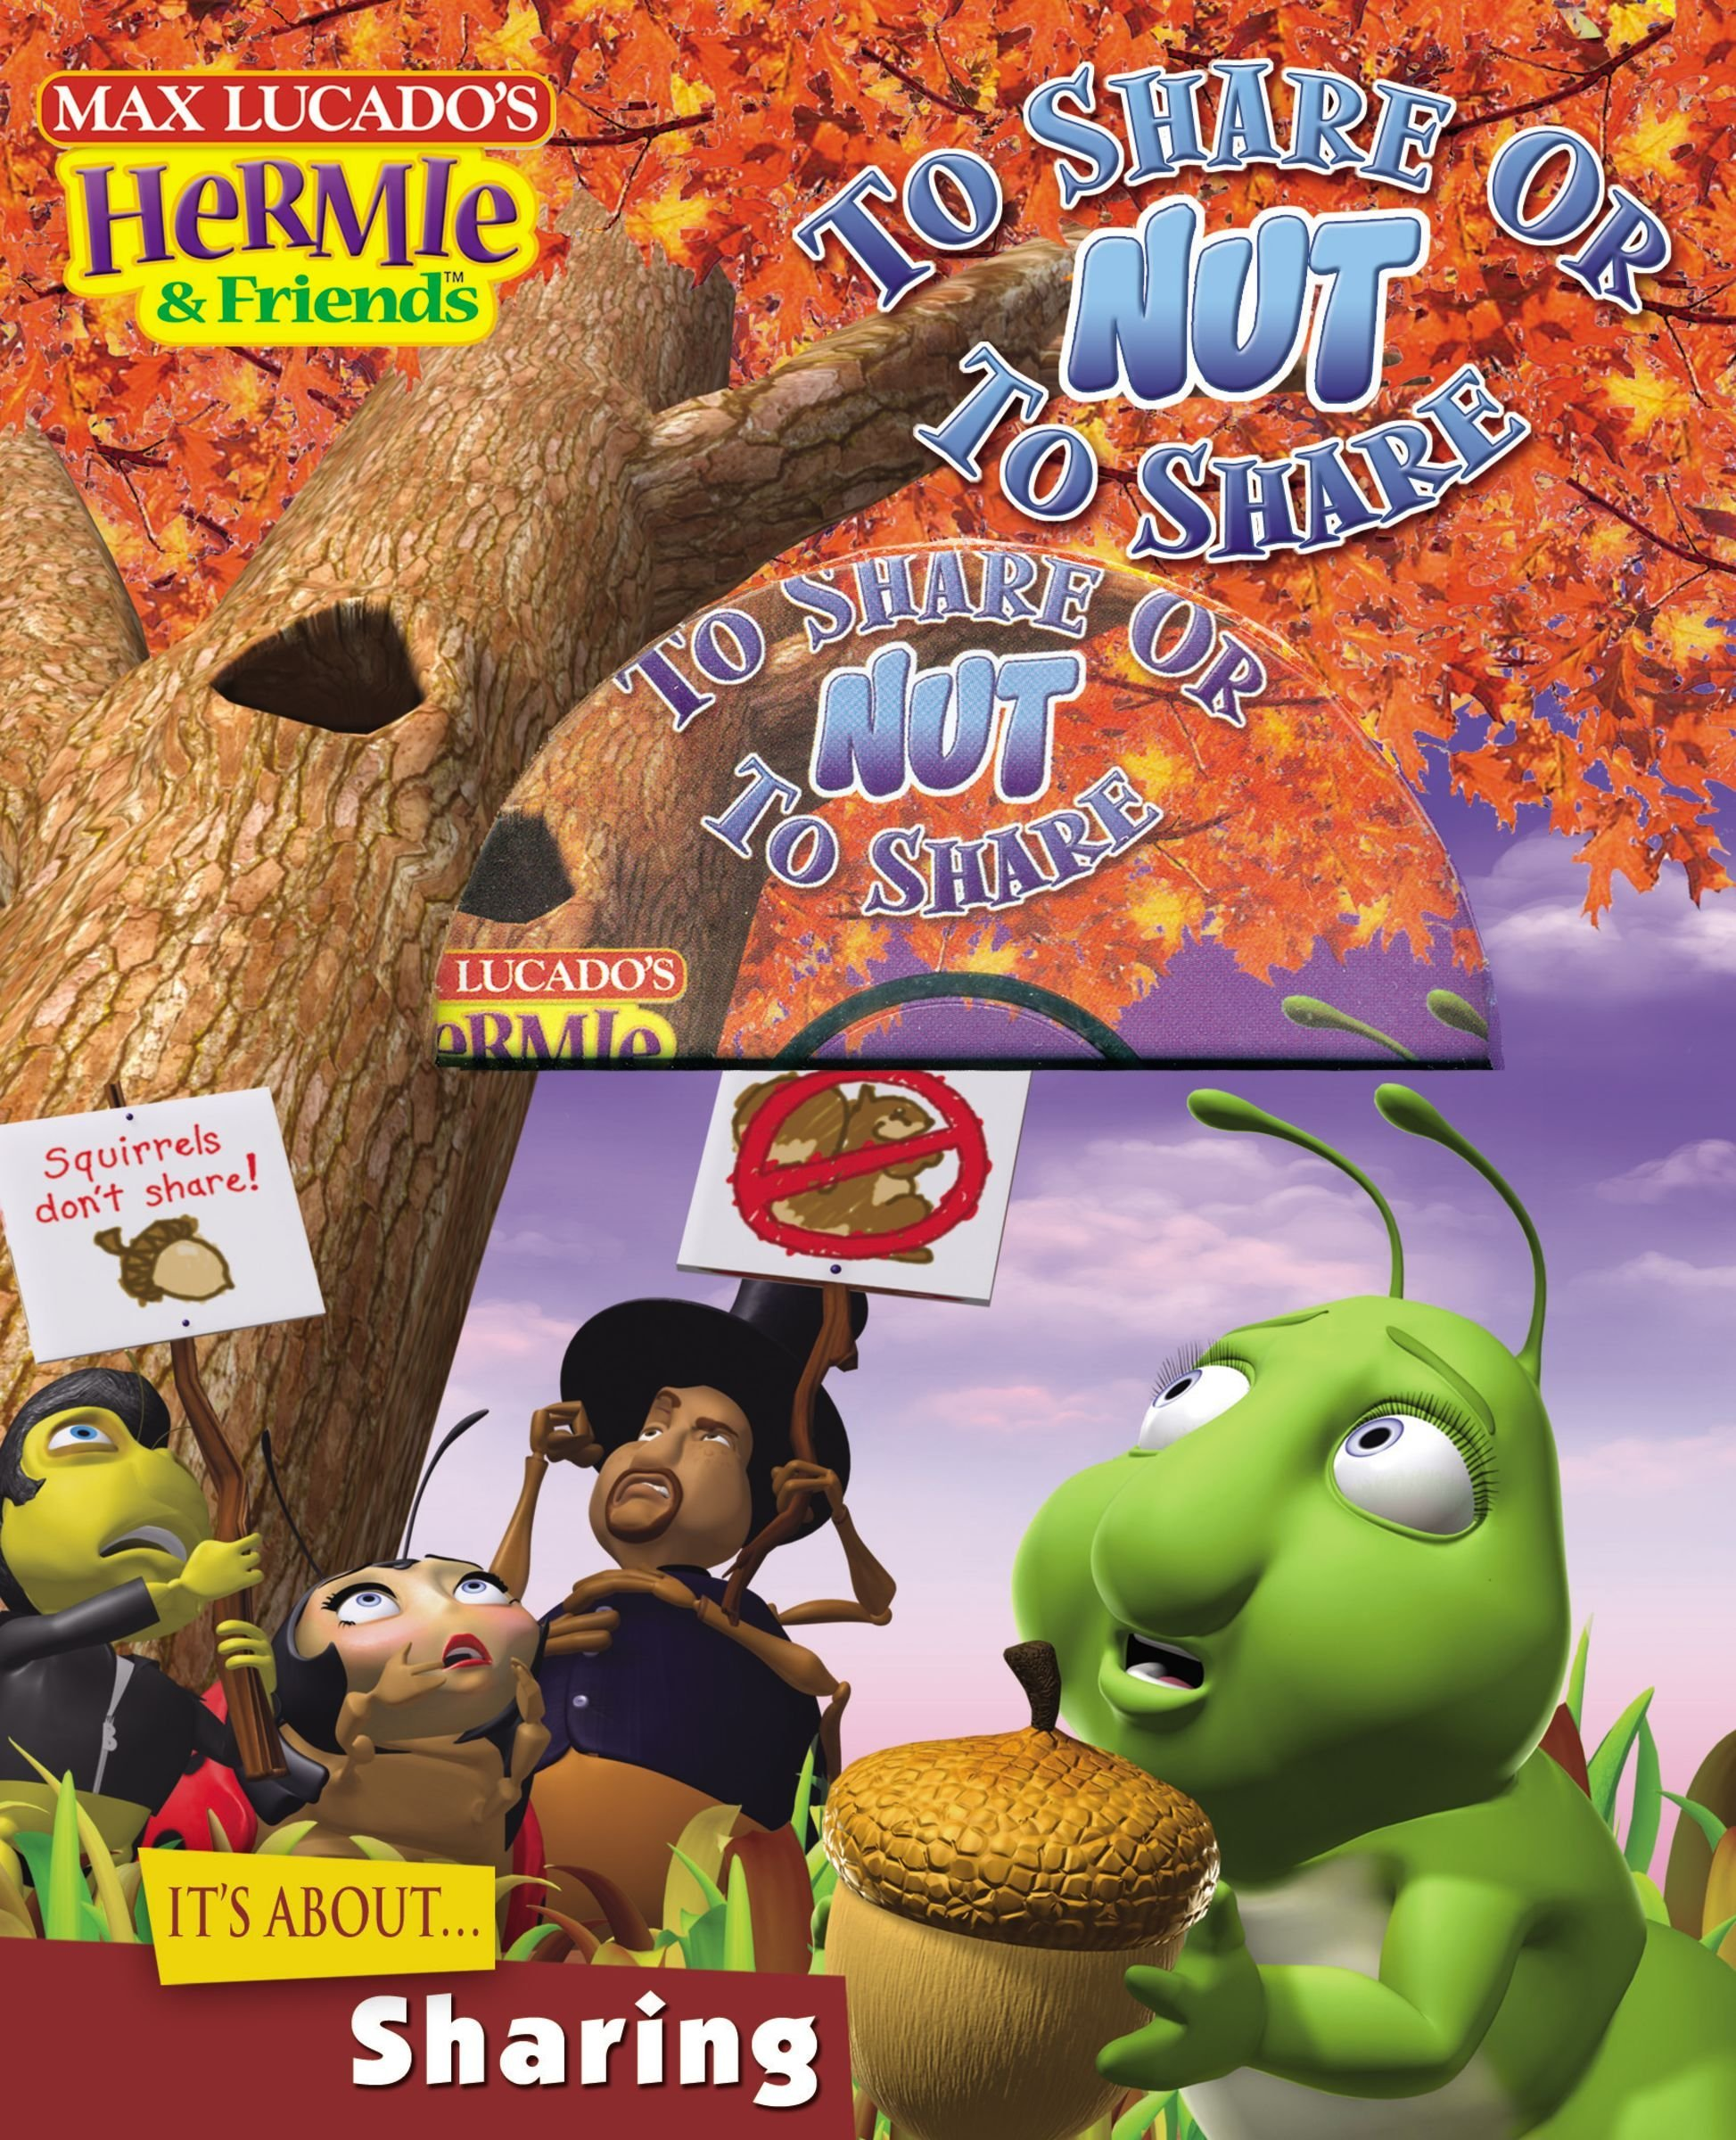 To Share or Nut to Share (Max Lucado's Hermie & Friends) PDF